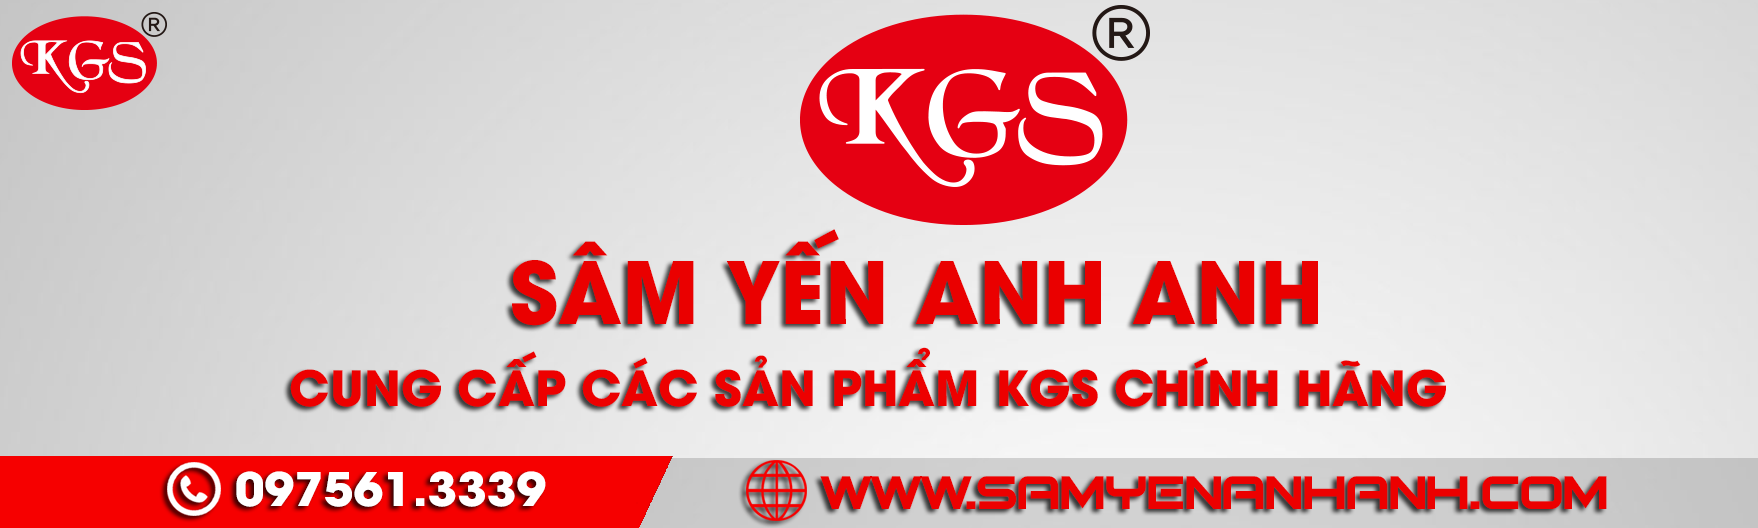 banner kgs sâm yến anh anh mới